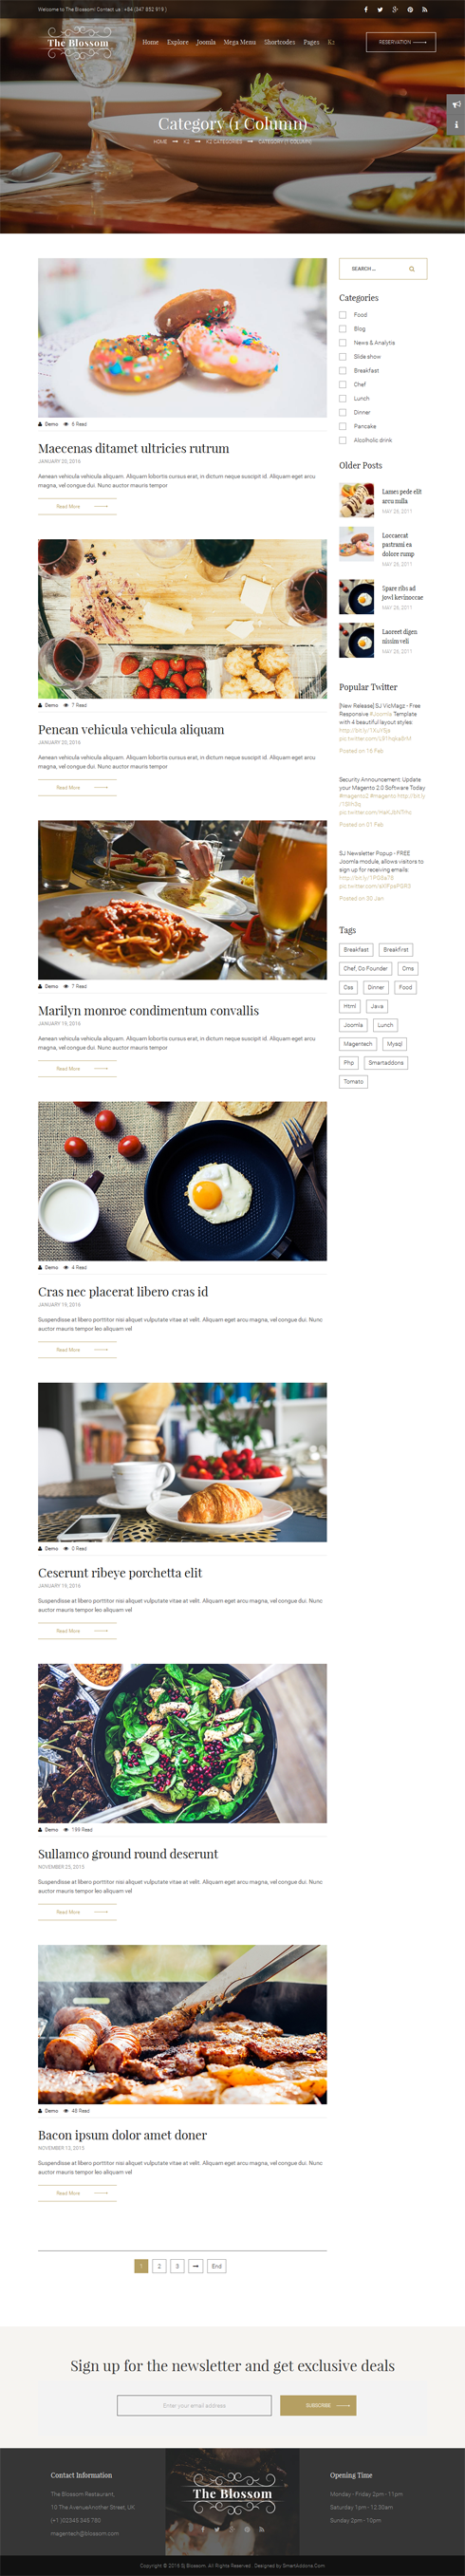 SJ Blossom - Responsive Joomla Restaurant Template - 05_k2_category_col1.png